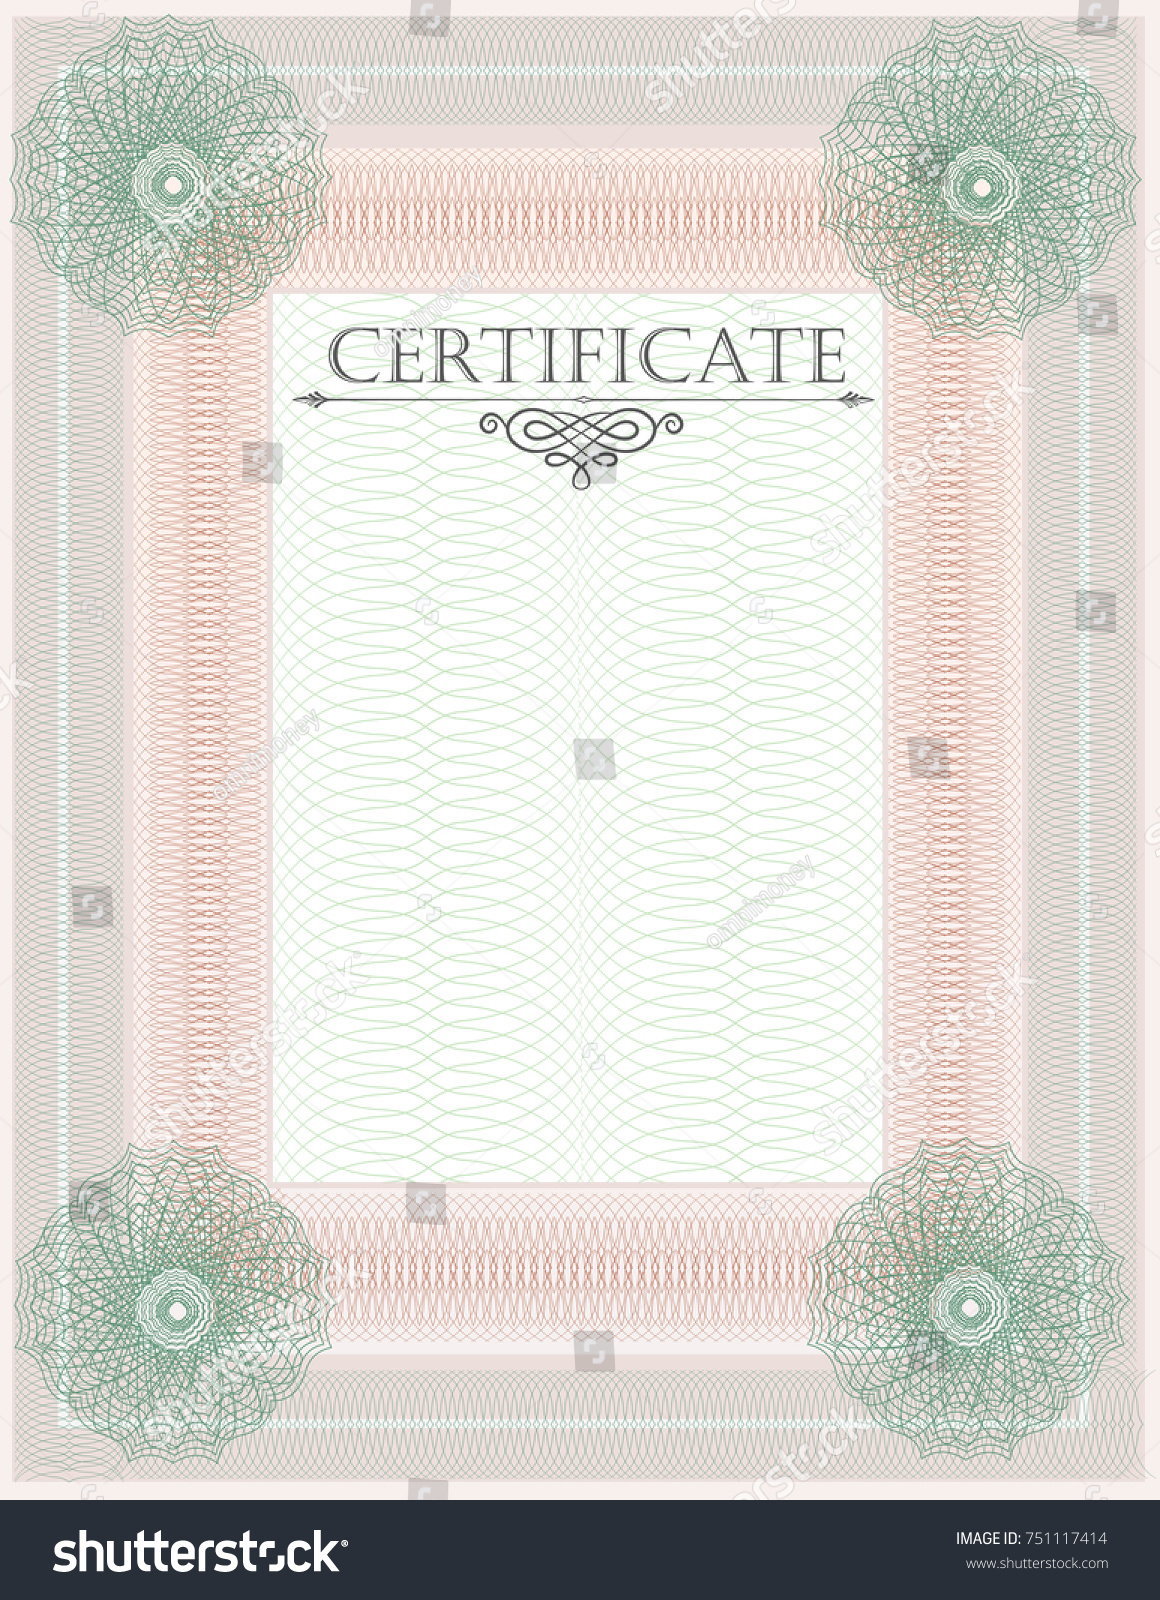 Blank stock certificate template goes 509 corporate stock blank stock certificate template free baby birth certificate blank stock certificate template free blank stock certificate xflitez Choice Image